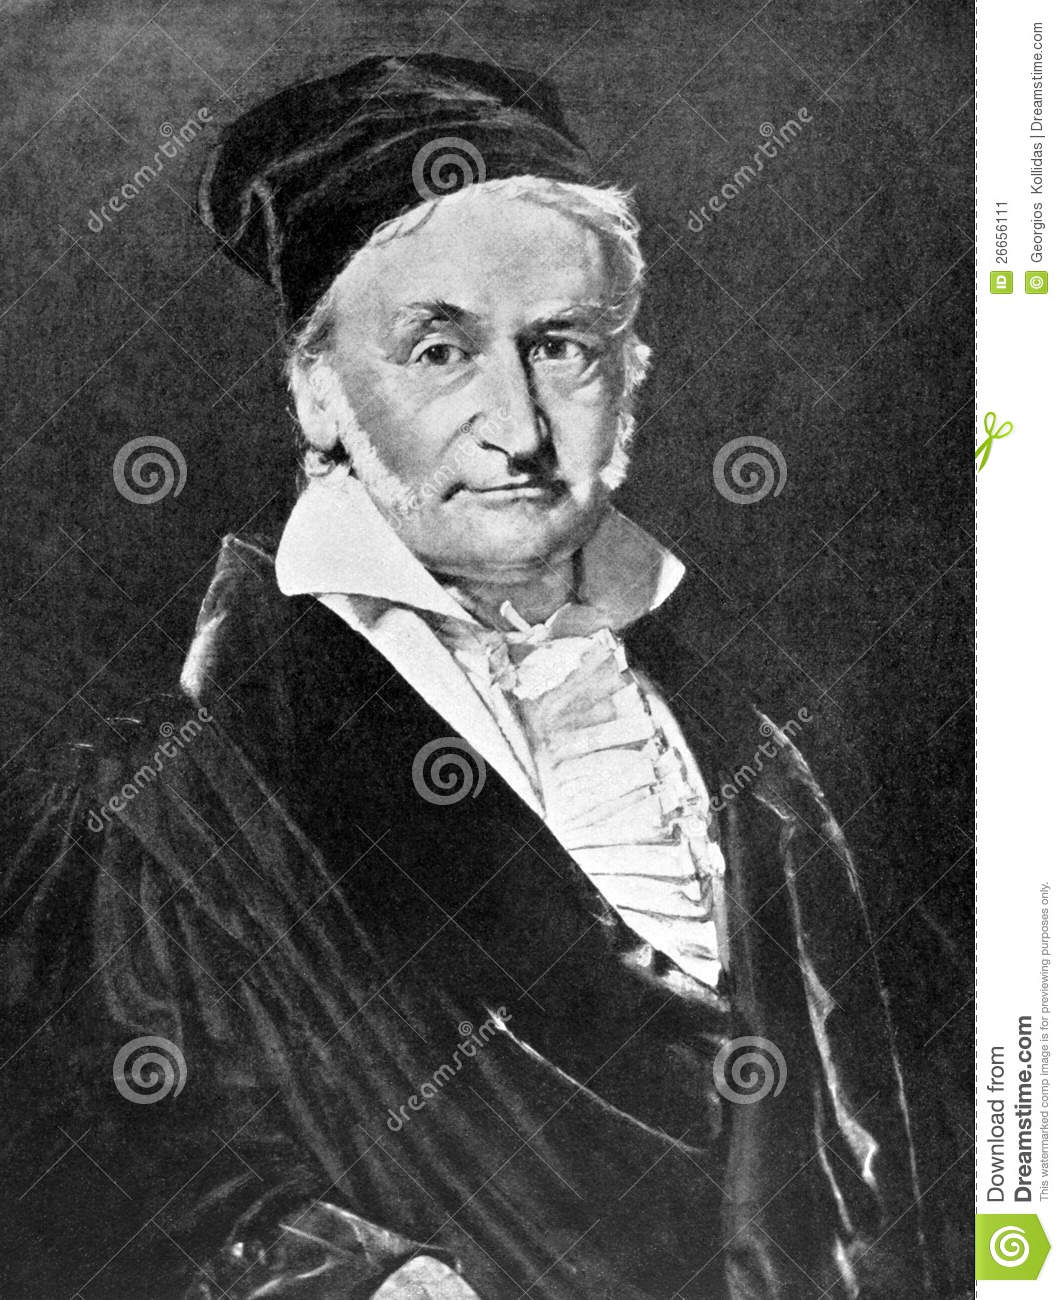 carl friedrich gauss dissertation Carl friedrich gauss sania ali carl friedrich gauss' life carl fridrich gauss was born in brunswick, germany to a working class family on the 30th of april 1777 his father made a living by laying bricks and gardening, hence it was not likely that gauss would pursue an education.